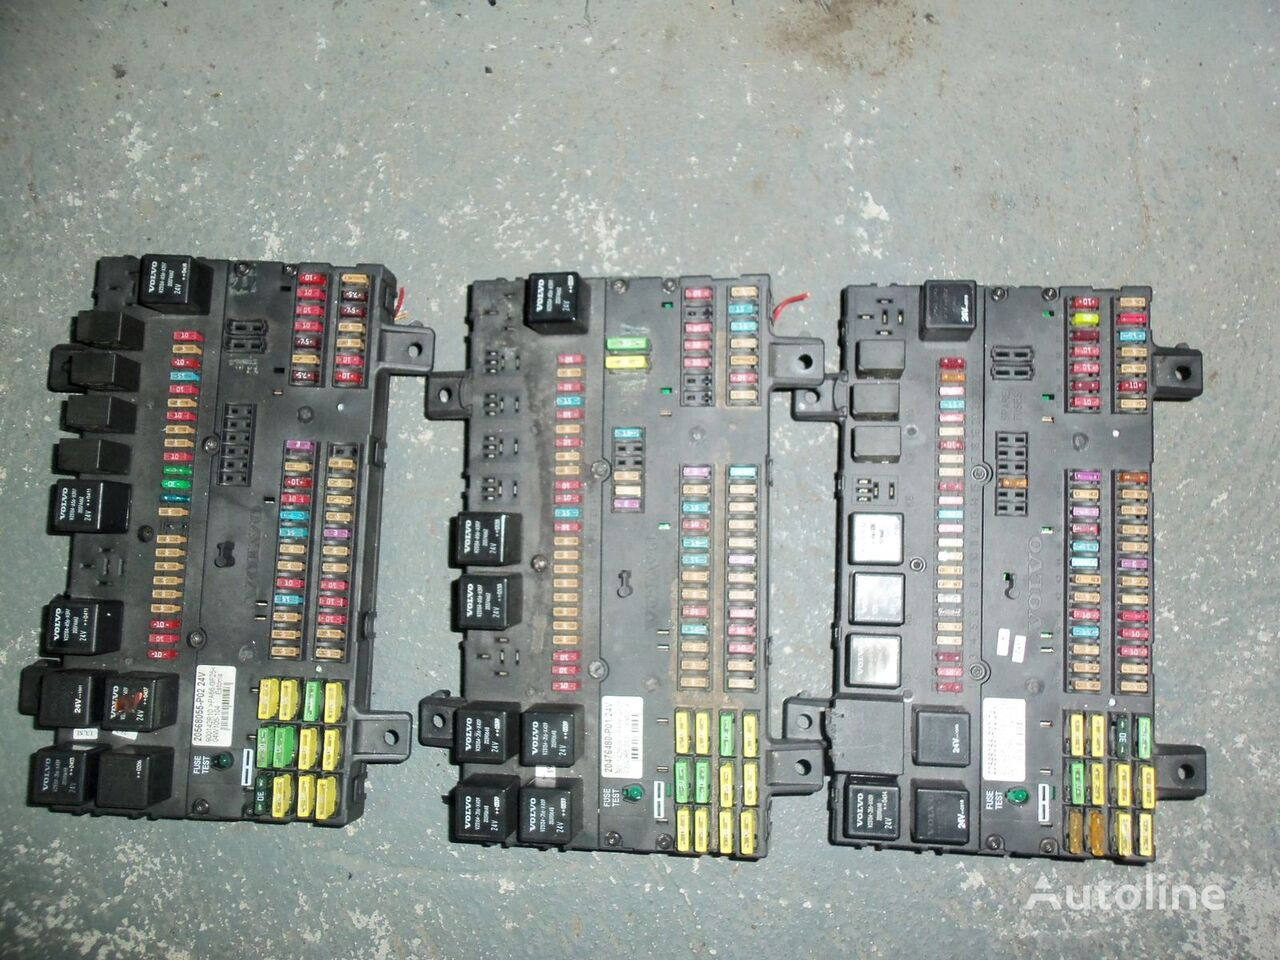 кутия с предпазители  VOLVO FH13 fuse and relay center, central electrical box 20568055, 21732199 за влекач VOLVO FH13